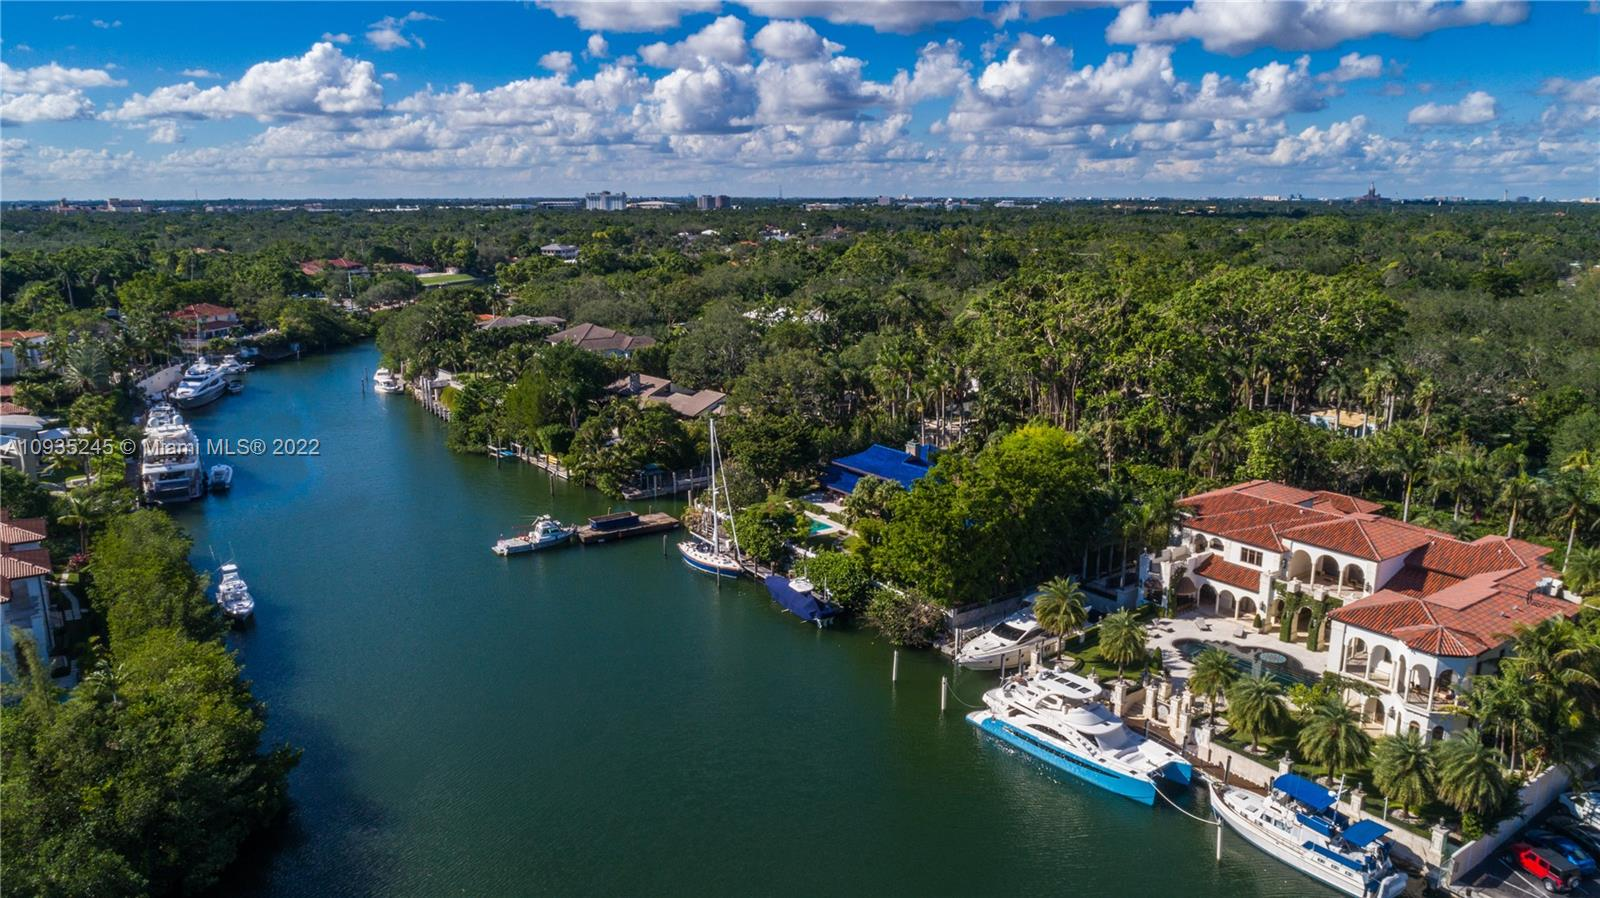 Details for 150 Edgewater Dr, Coral Gables, FL 33133